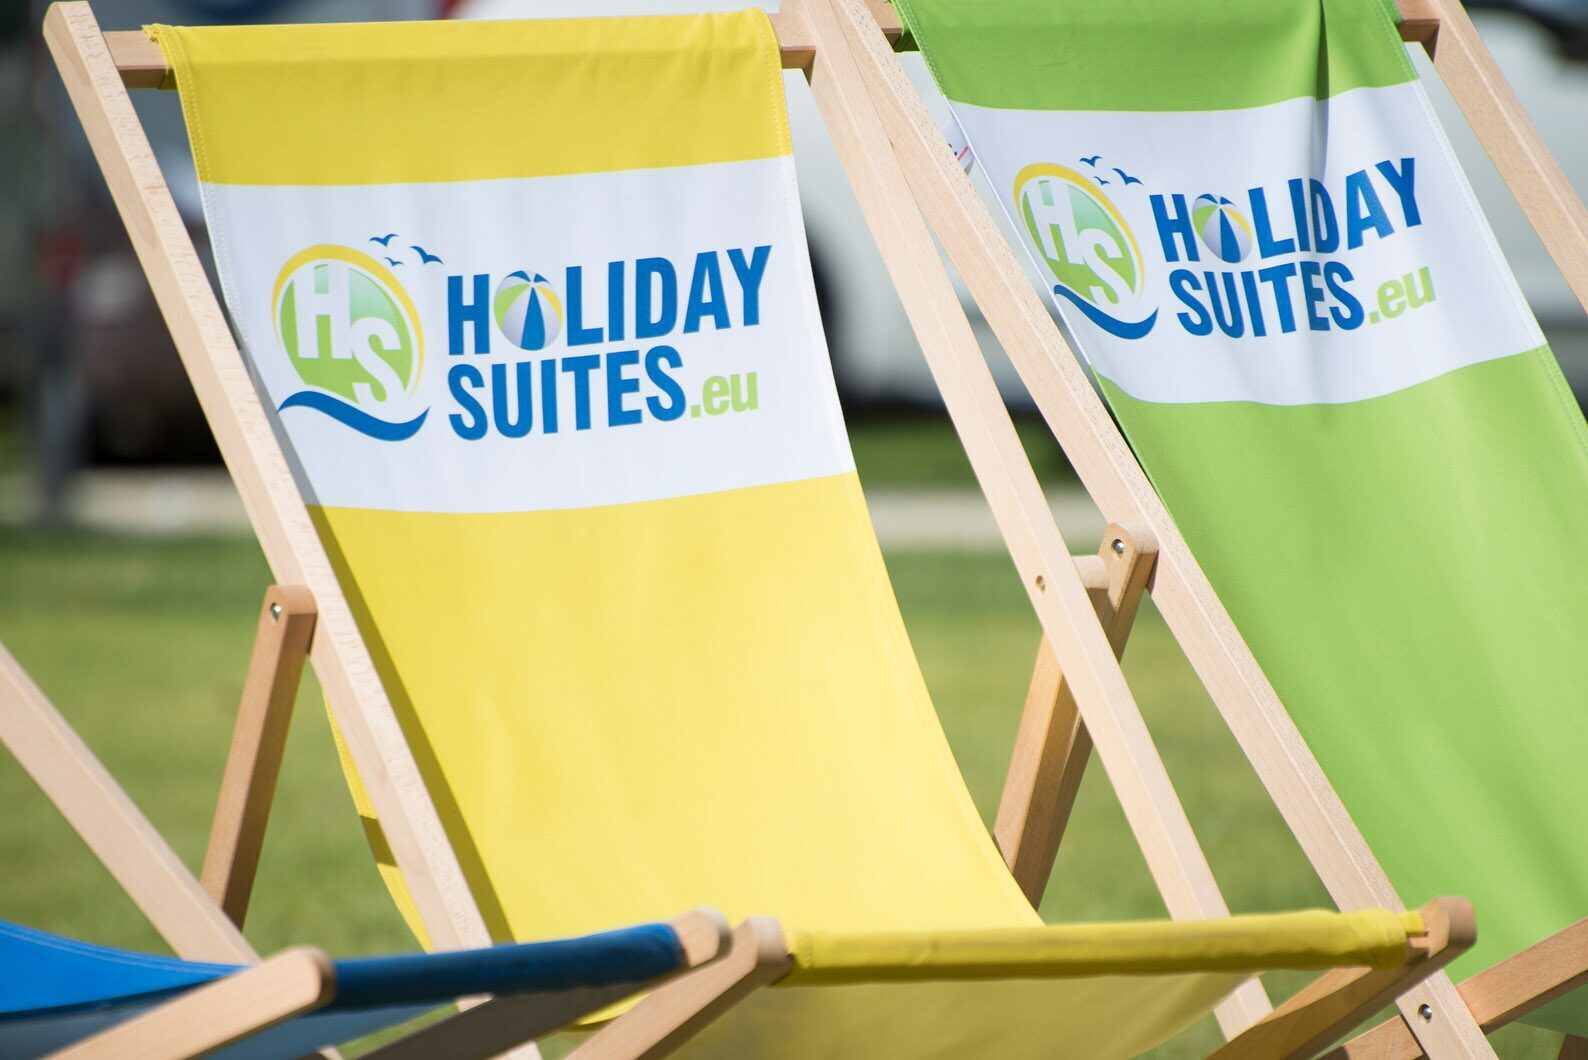 Deckchairs Holiday Suites